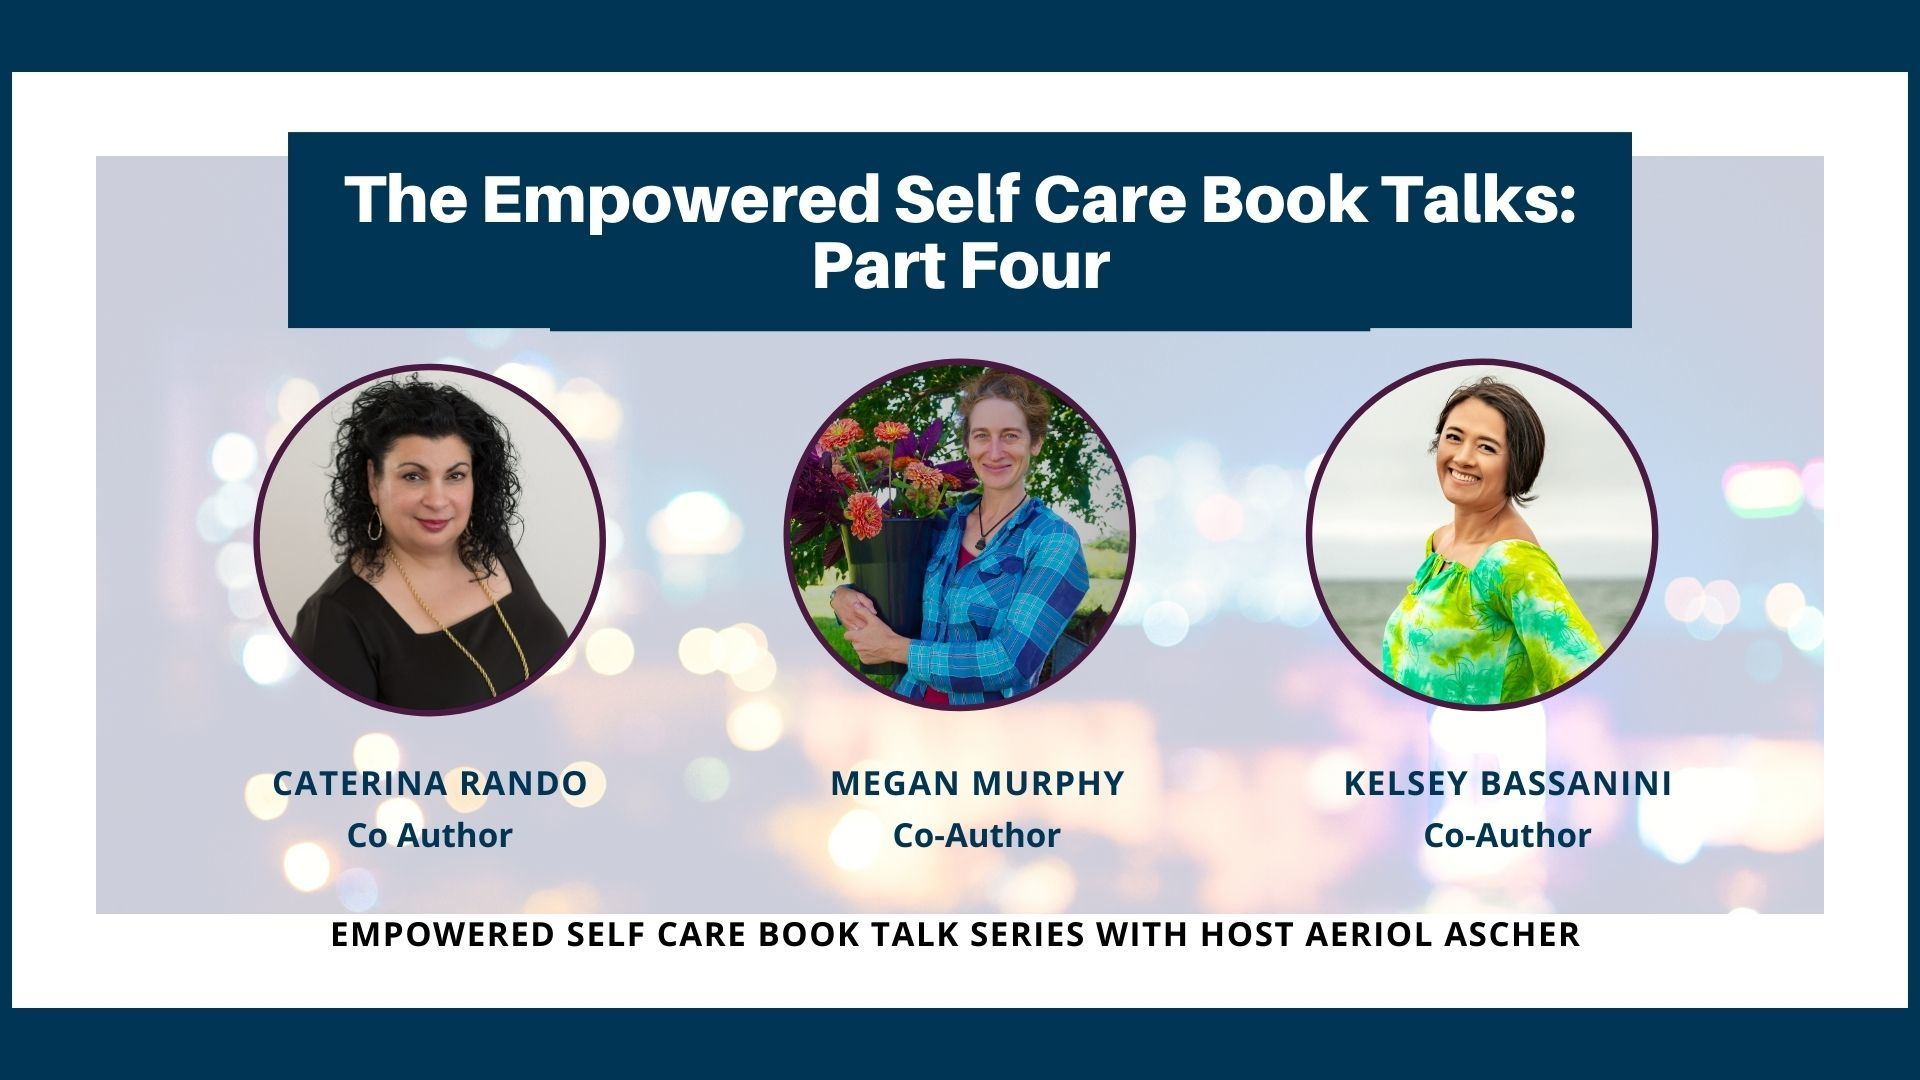 The Empowered Self Care Book Talk Series Part 4